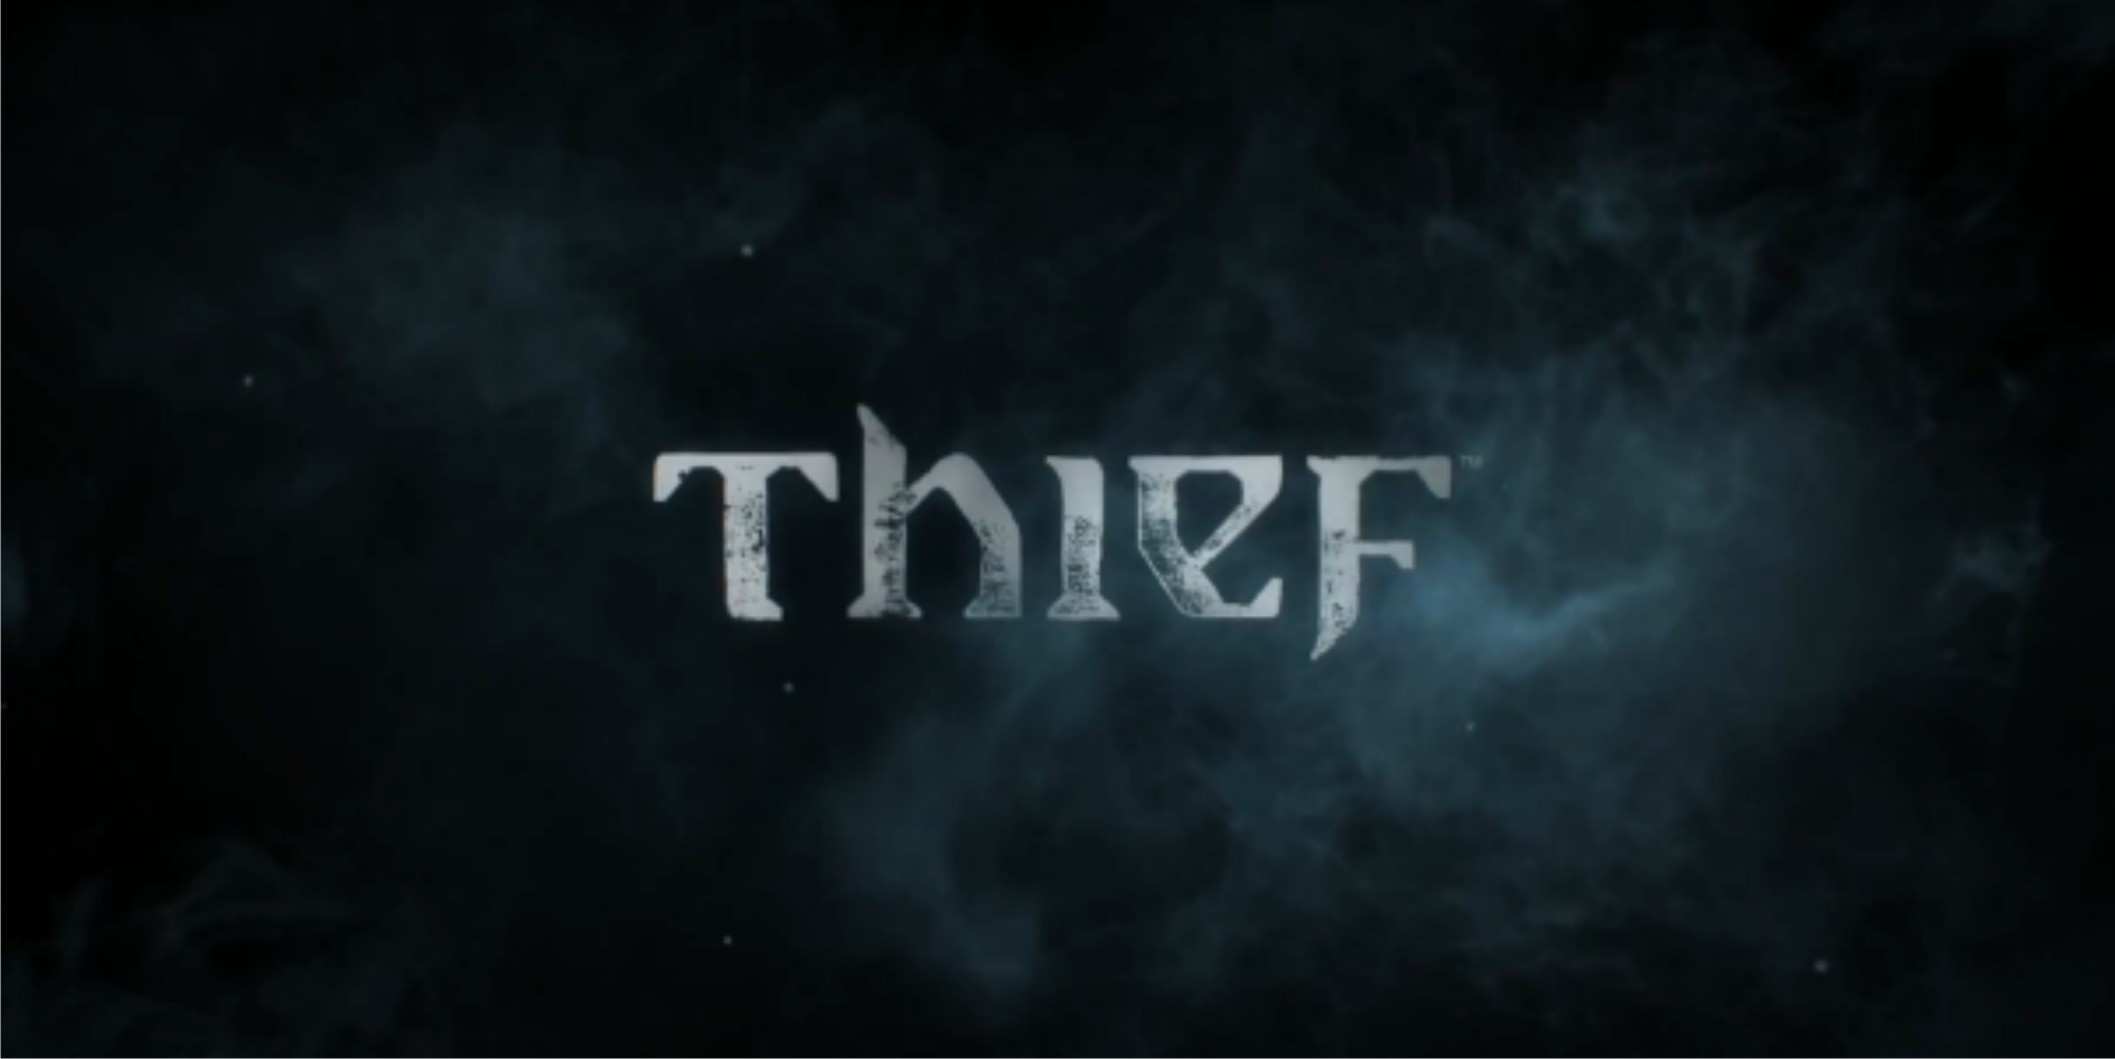 The launch trailer for Thief for Playstation 3, Playstation 4, Xbox One and Windows PC